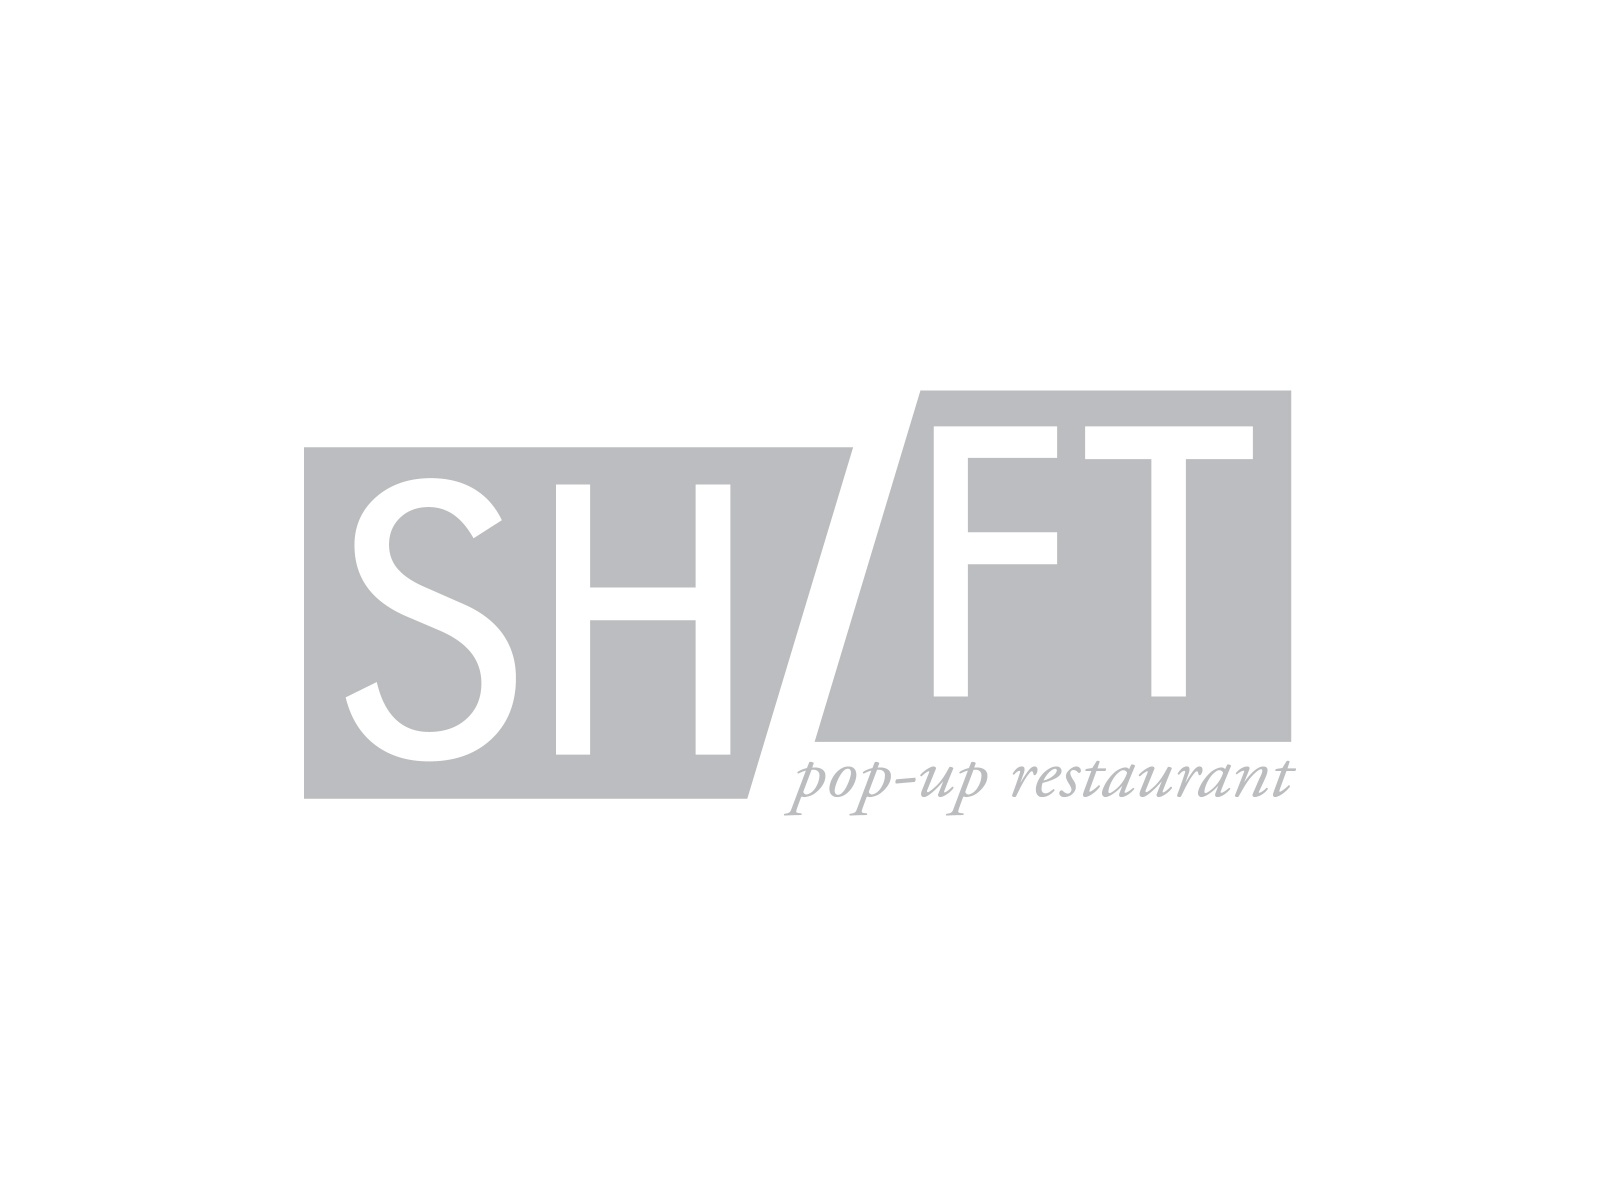 Pop-up Restaurant Logo